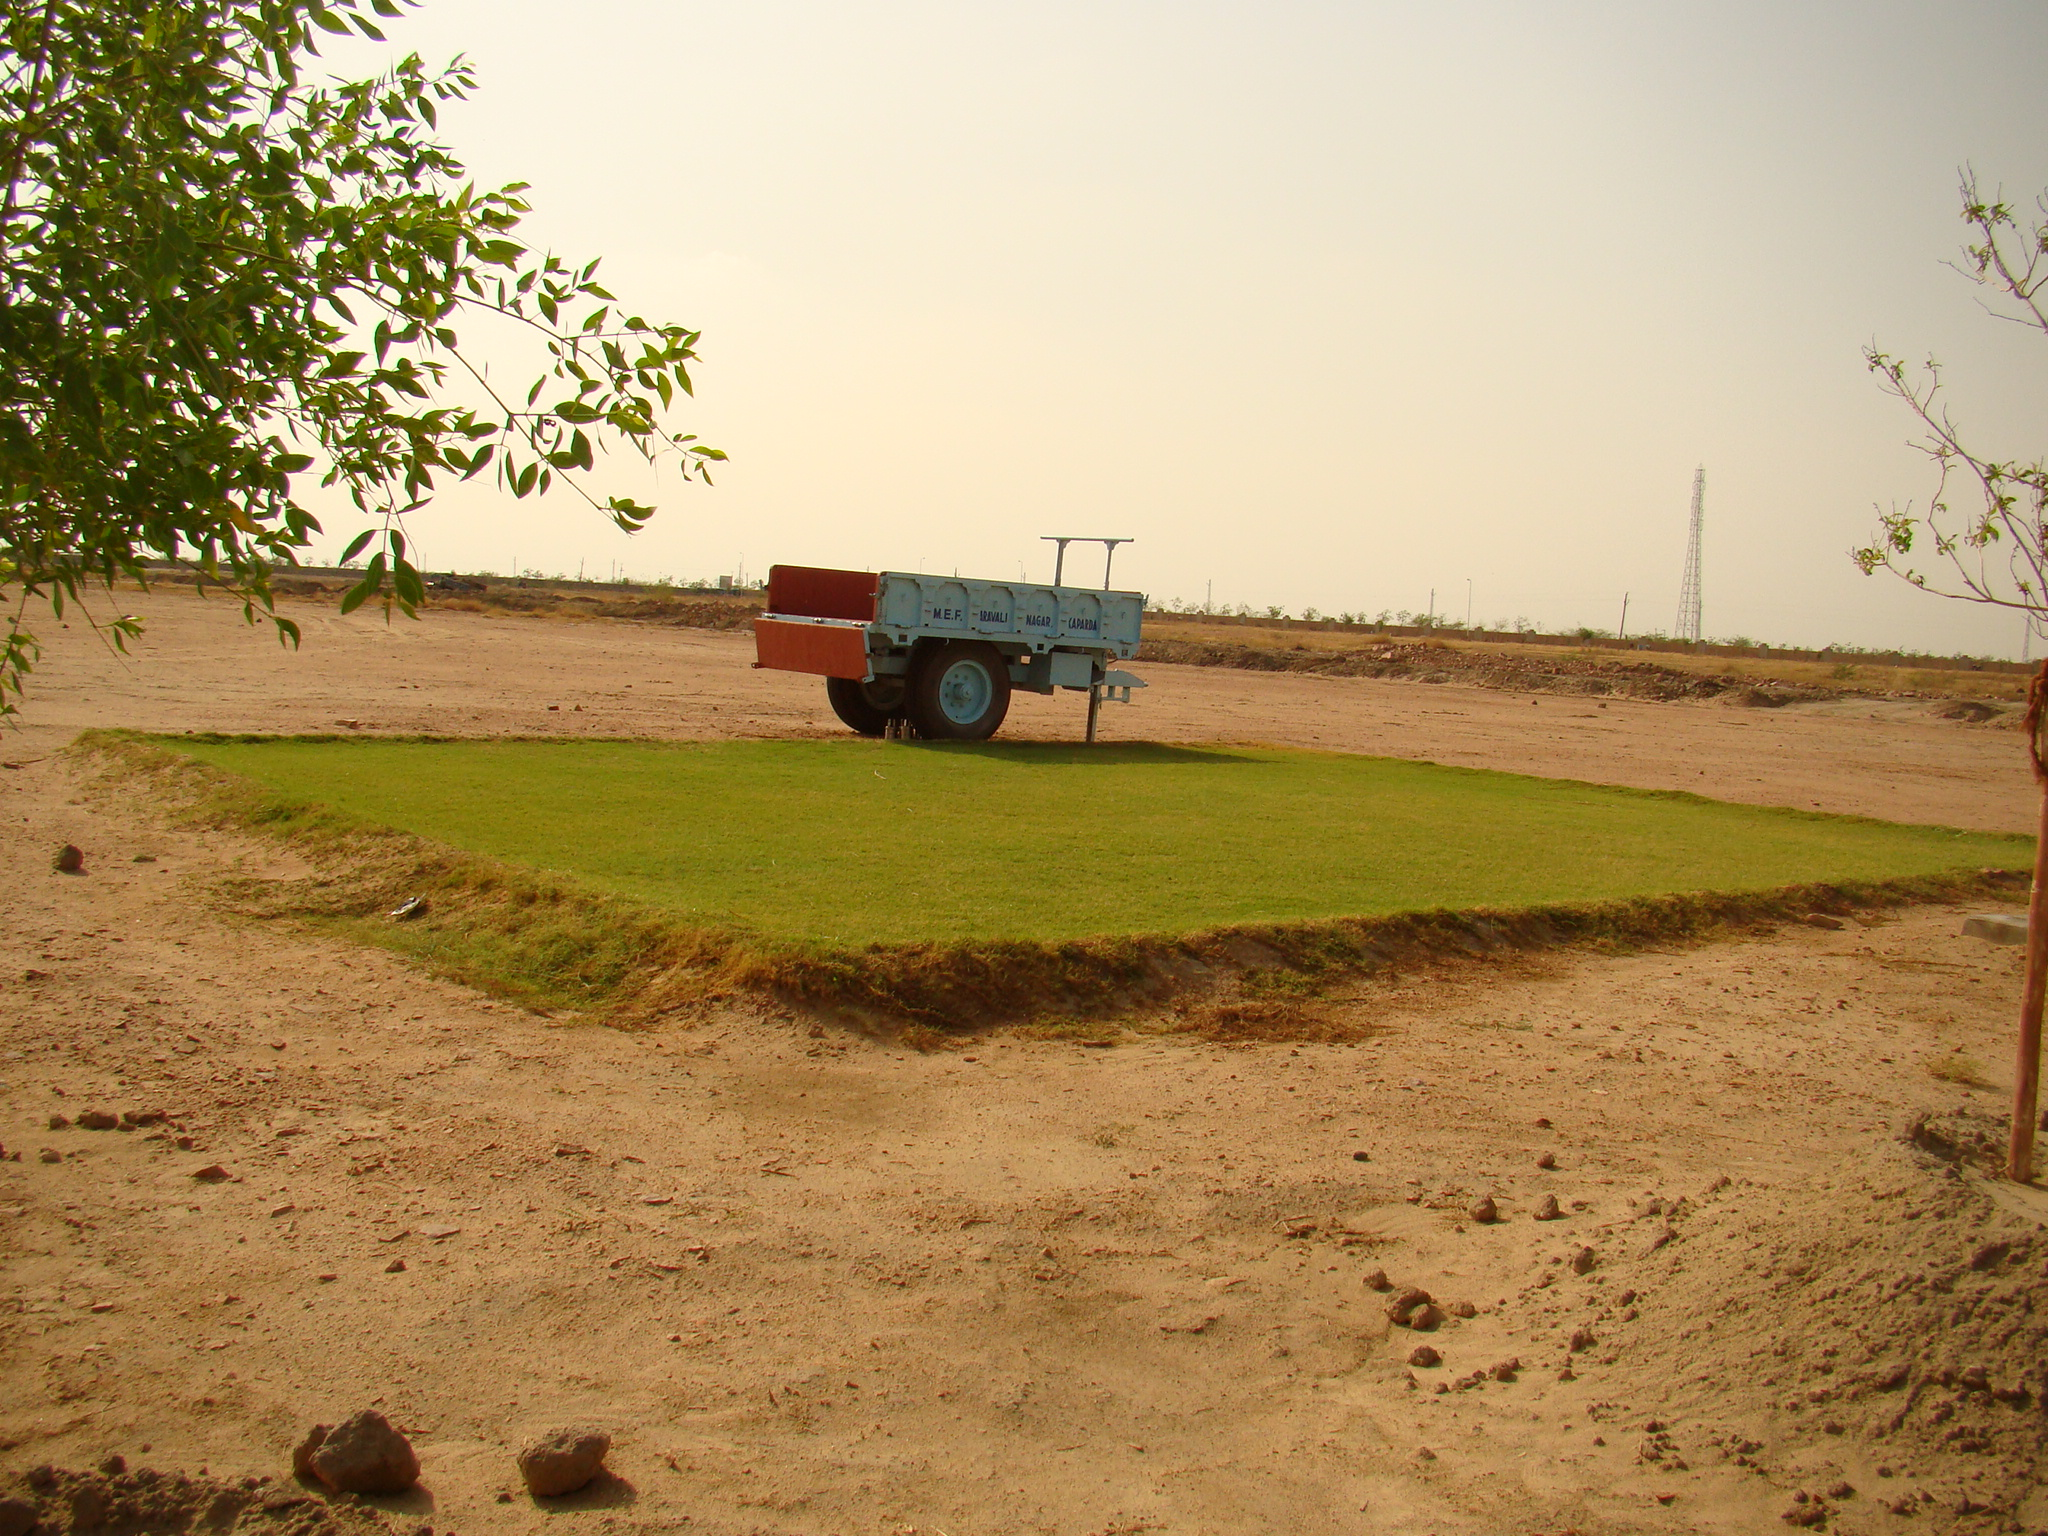 Aravali Institute of Management: The Story Of Breathing Life Into A Barren Land